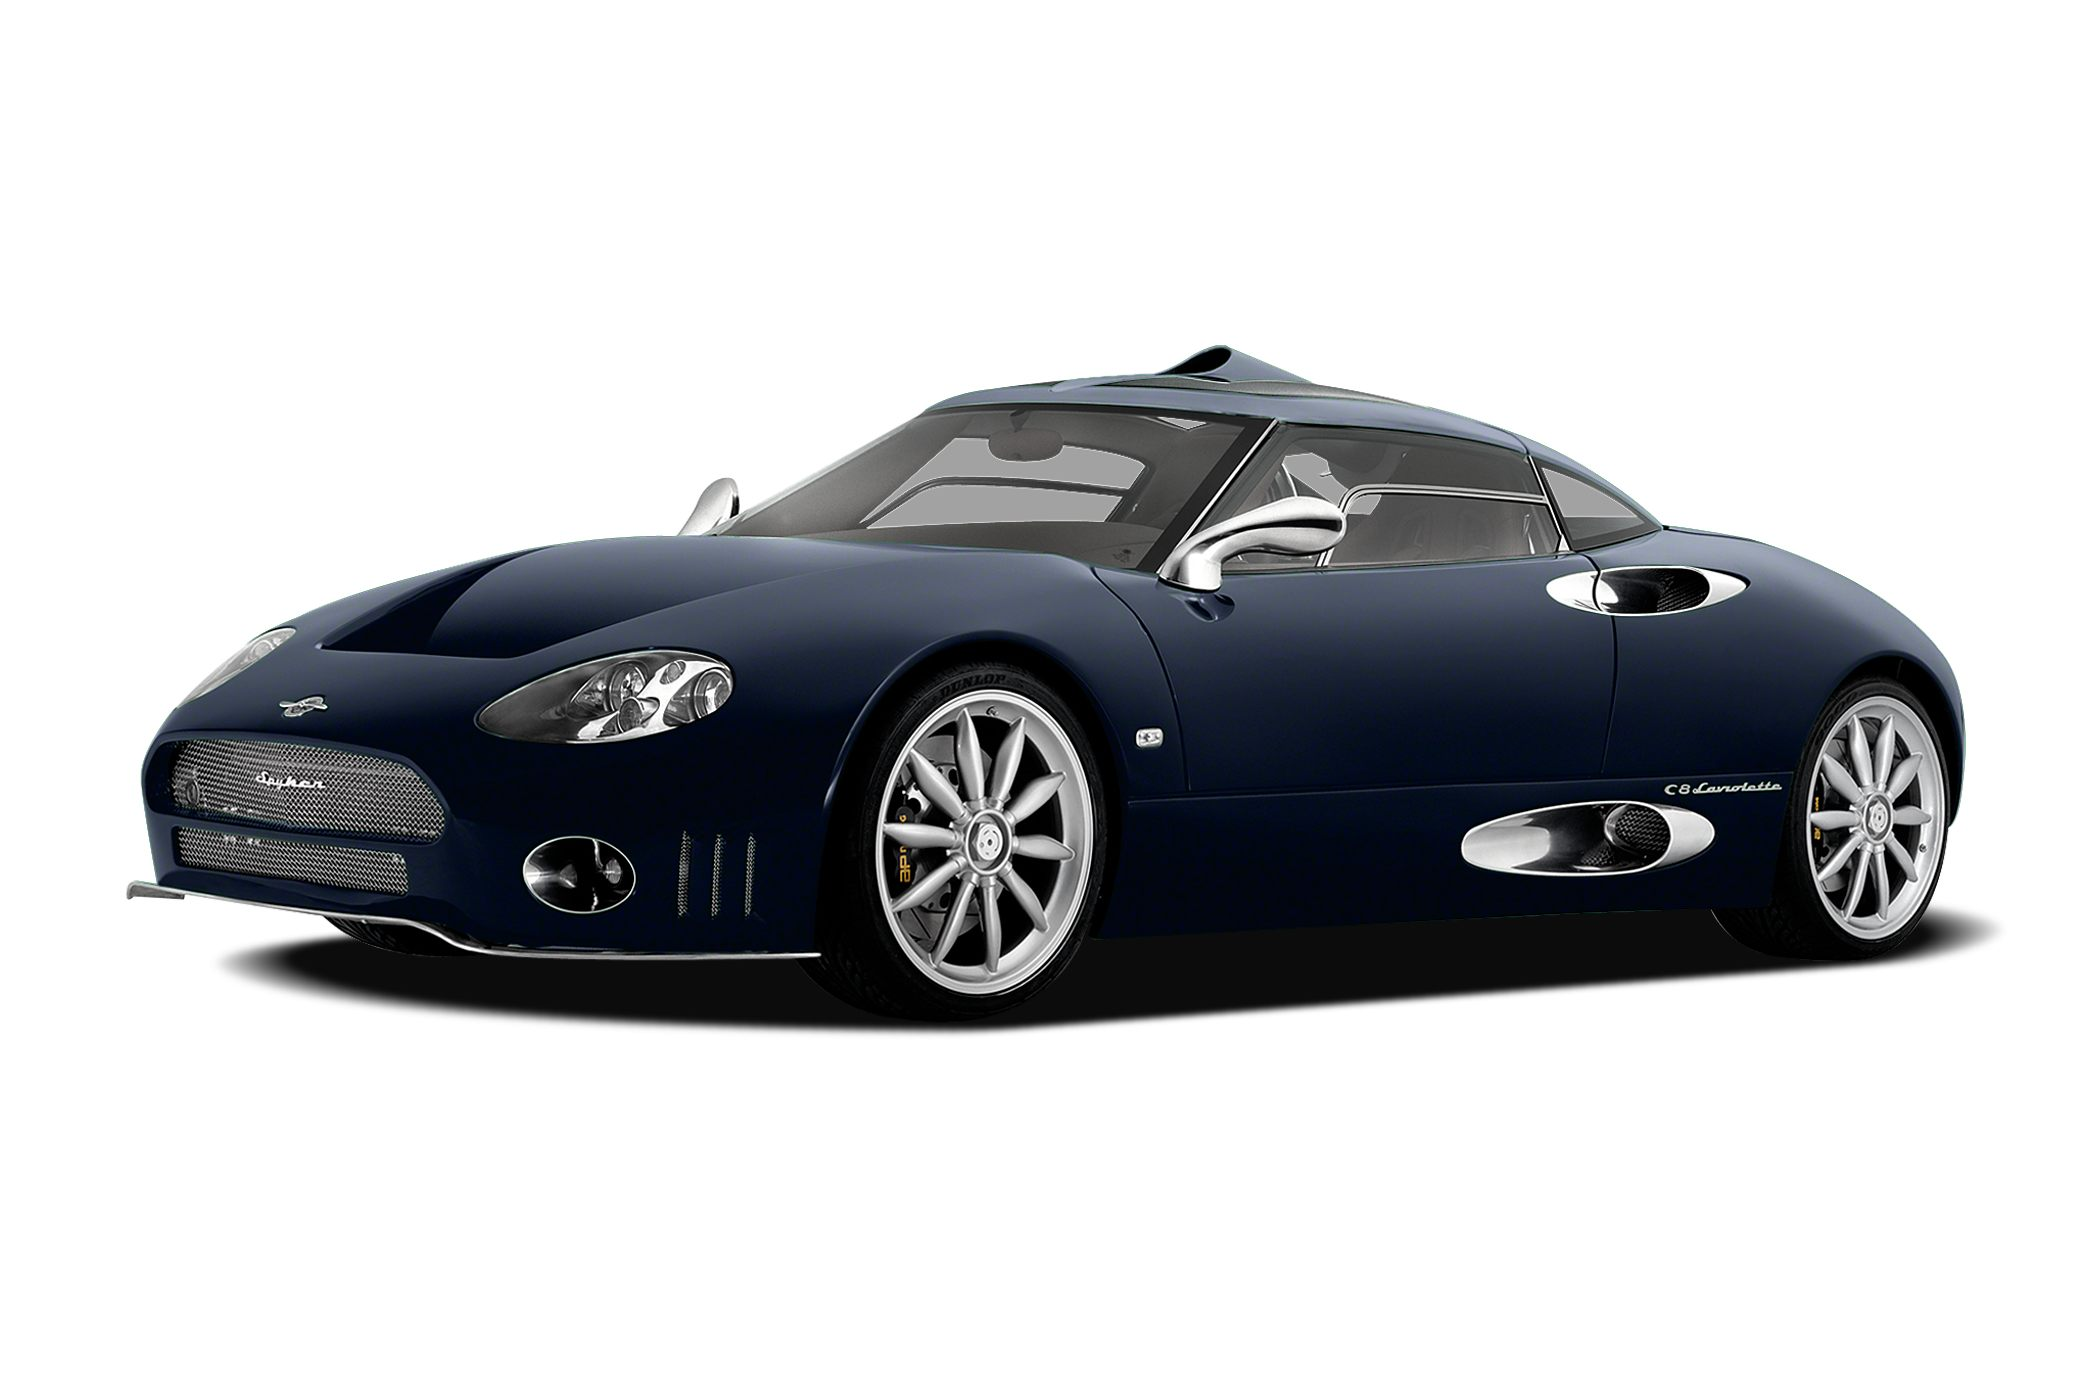 2009 Spyker C8 Laviolette